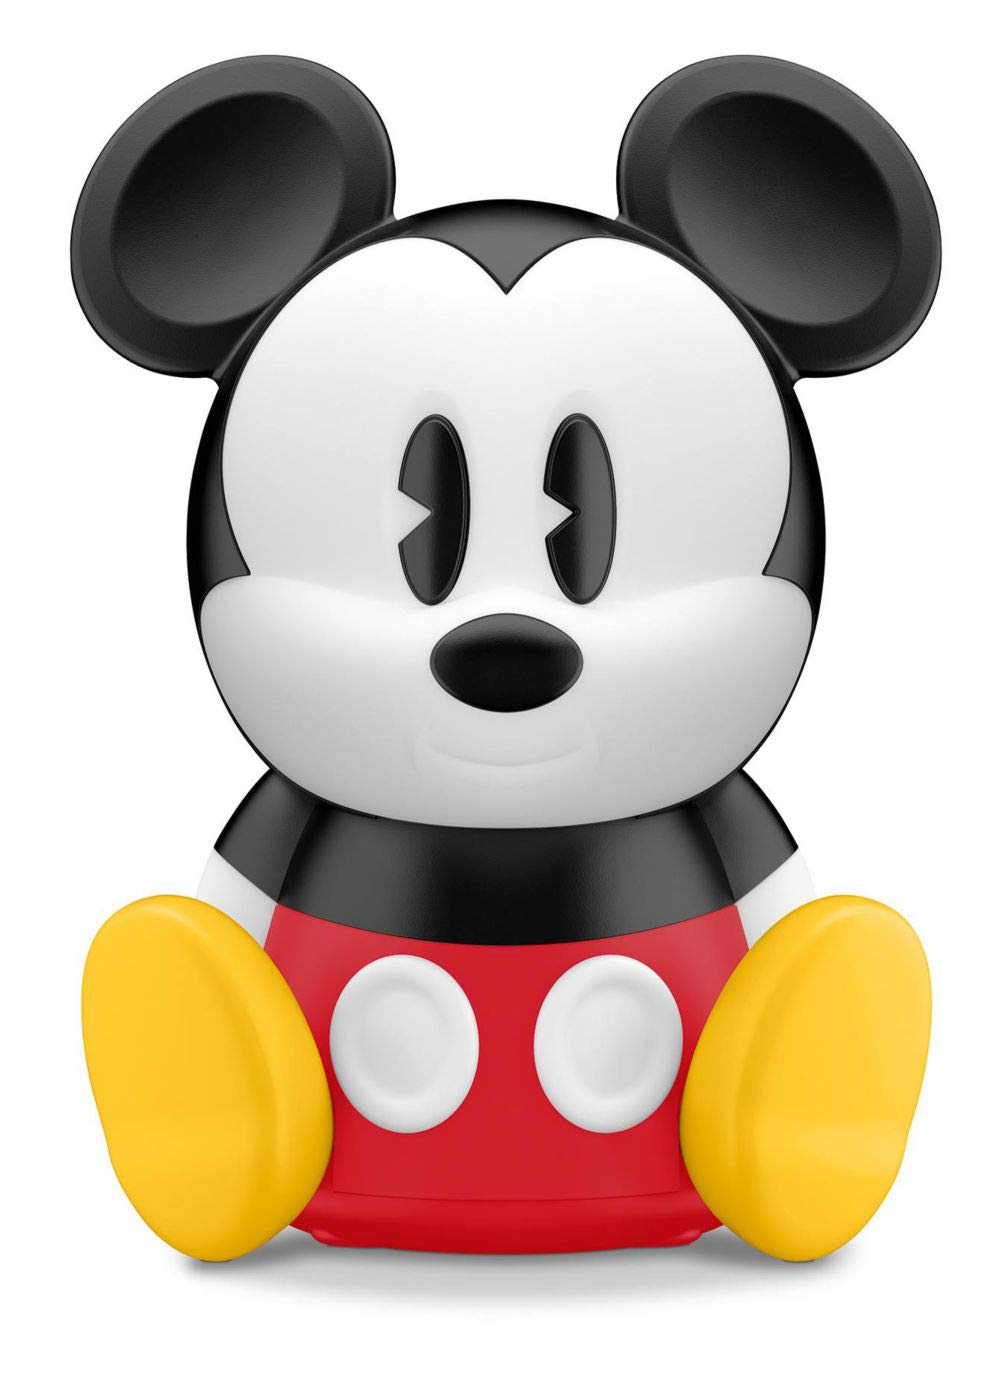 Philips Disney Sleep Time Mickey Children's Night Light and Wake up Light with Integrated LED, 1 x 2 W - Black/Red